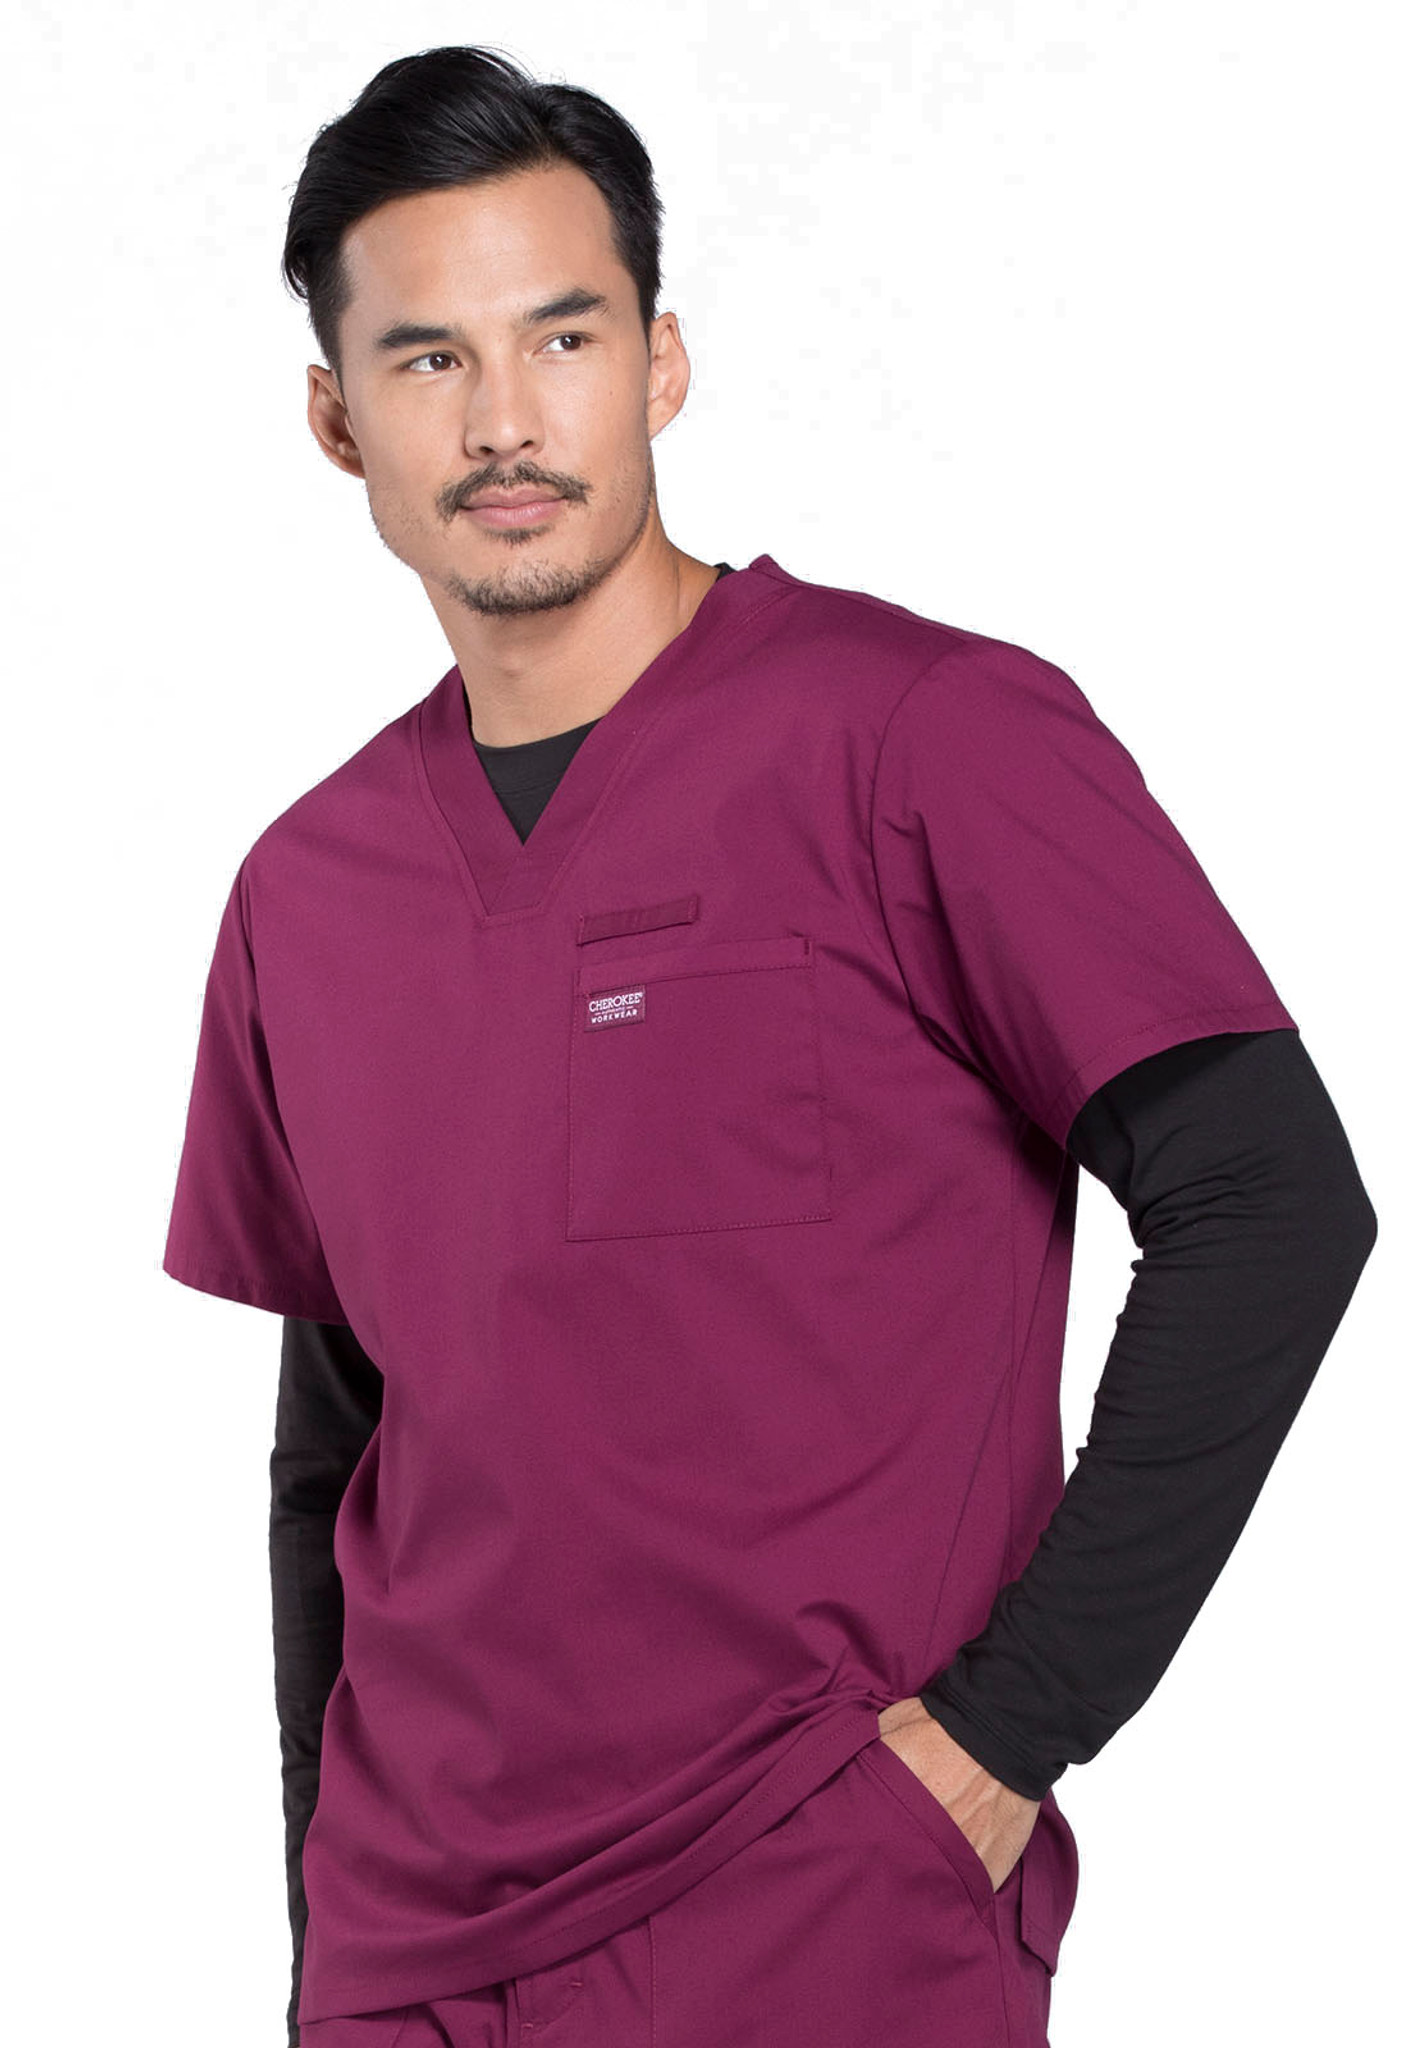 Cherokee Workwear Professionals WW675 Men's V-Neck Scrub Top, Left